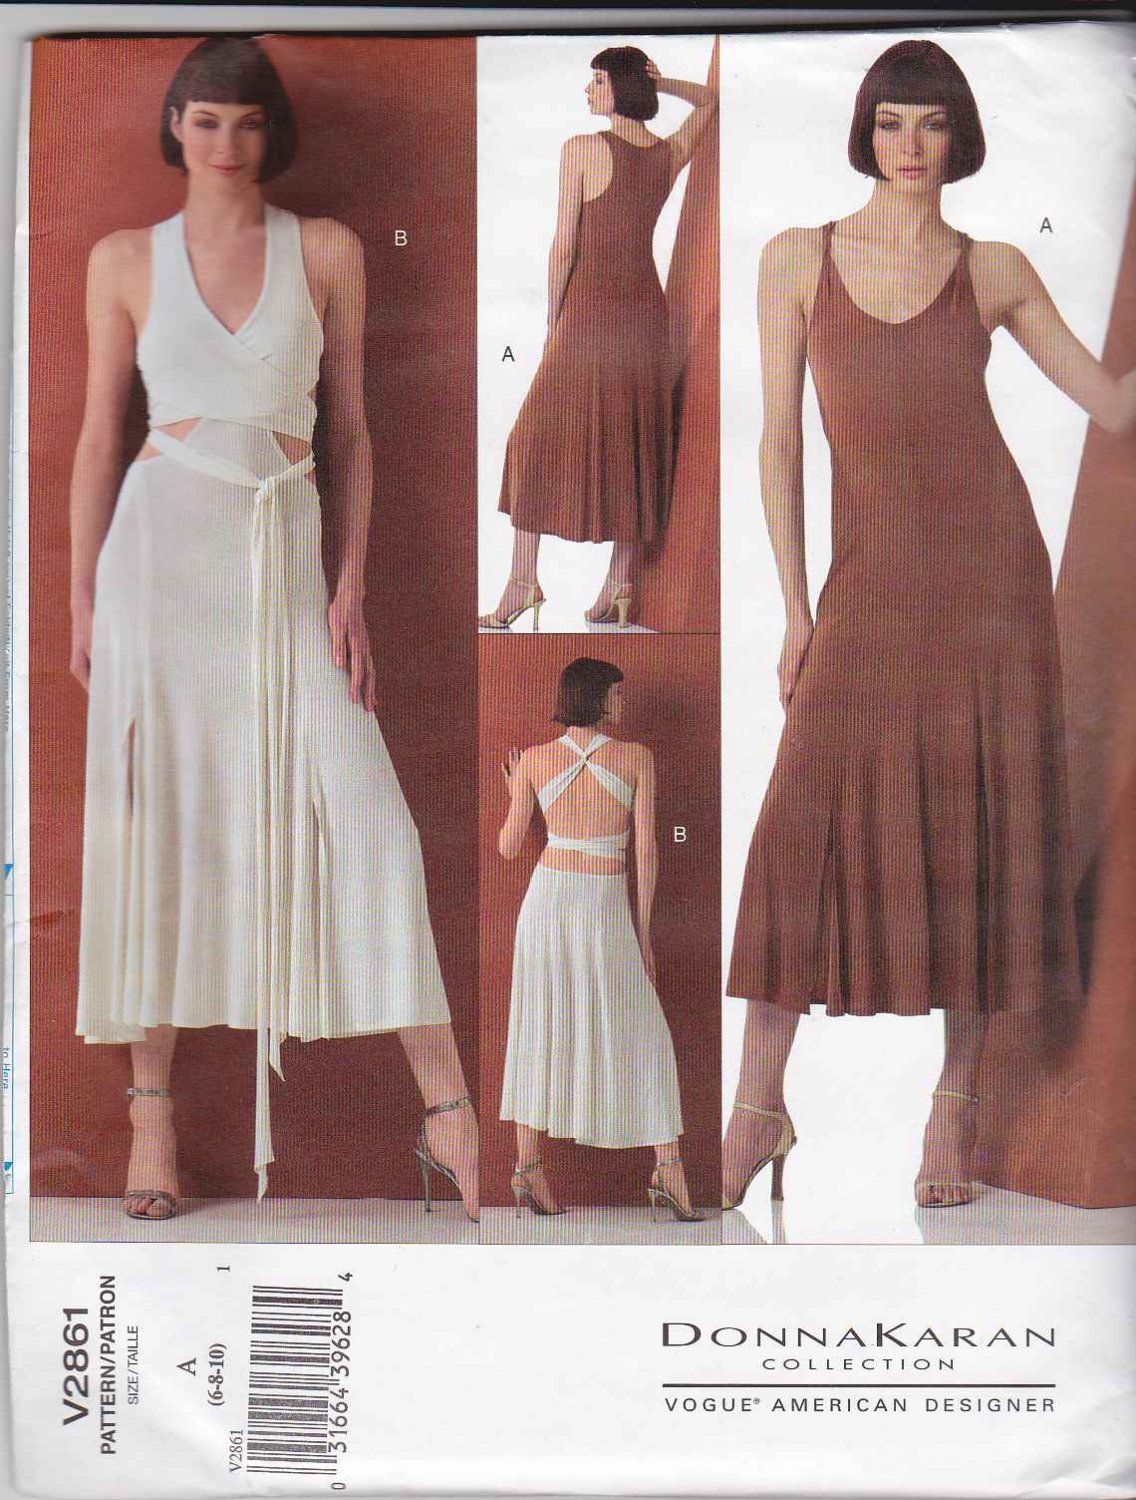 Vogue Sewing Pattern 2861 Misses Size 6-8-10 Donna Karan Two Different Knit Dresses Dance